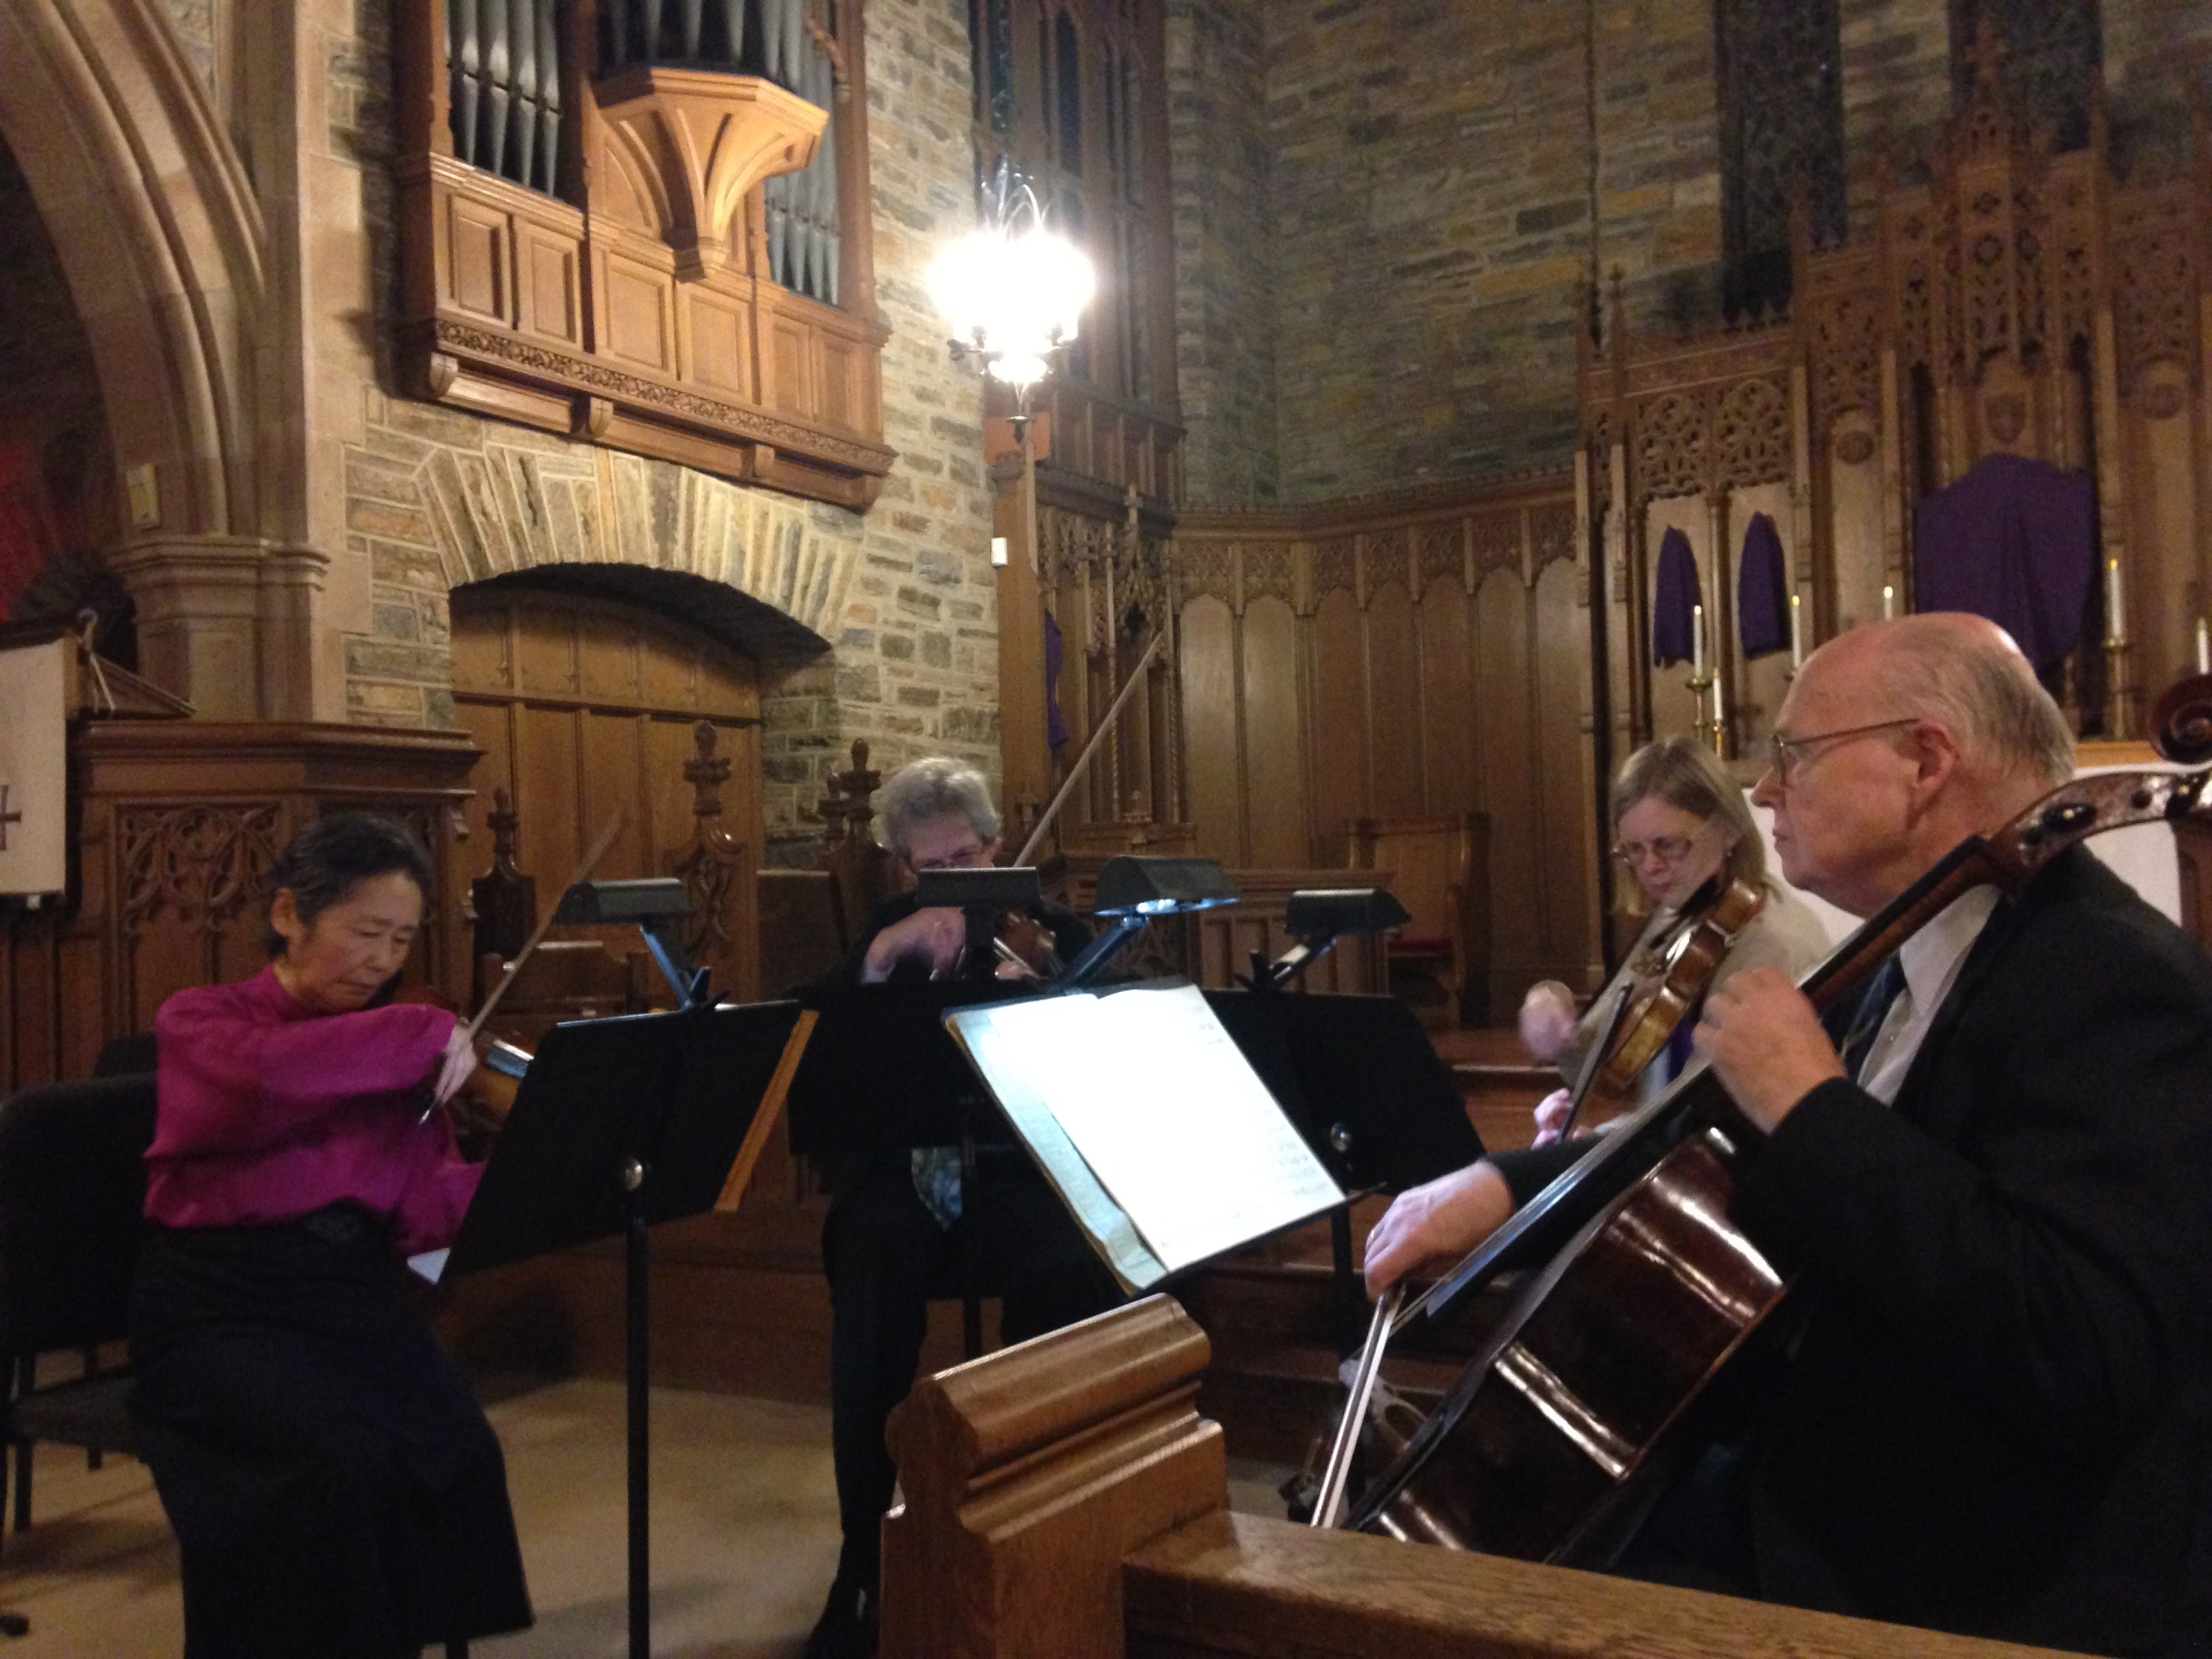 The Queens Symphony Orchestra last Wednesday kicked off the 2015 Salon Concert Series with a show at All Saints Episcopal Church in Woodhaven featuring the music of Johann Sebastian Bach and Claude Debussy. The series, funded through the office of City Councilman Eric Ulrich (R-Ozone Park), supports nine free concerts at various locations in the 32nd Council District. Photo Courtesy of Ed Wendell/Woodhaven Cultural & Historical Society.